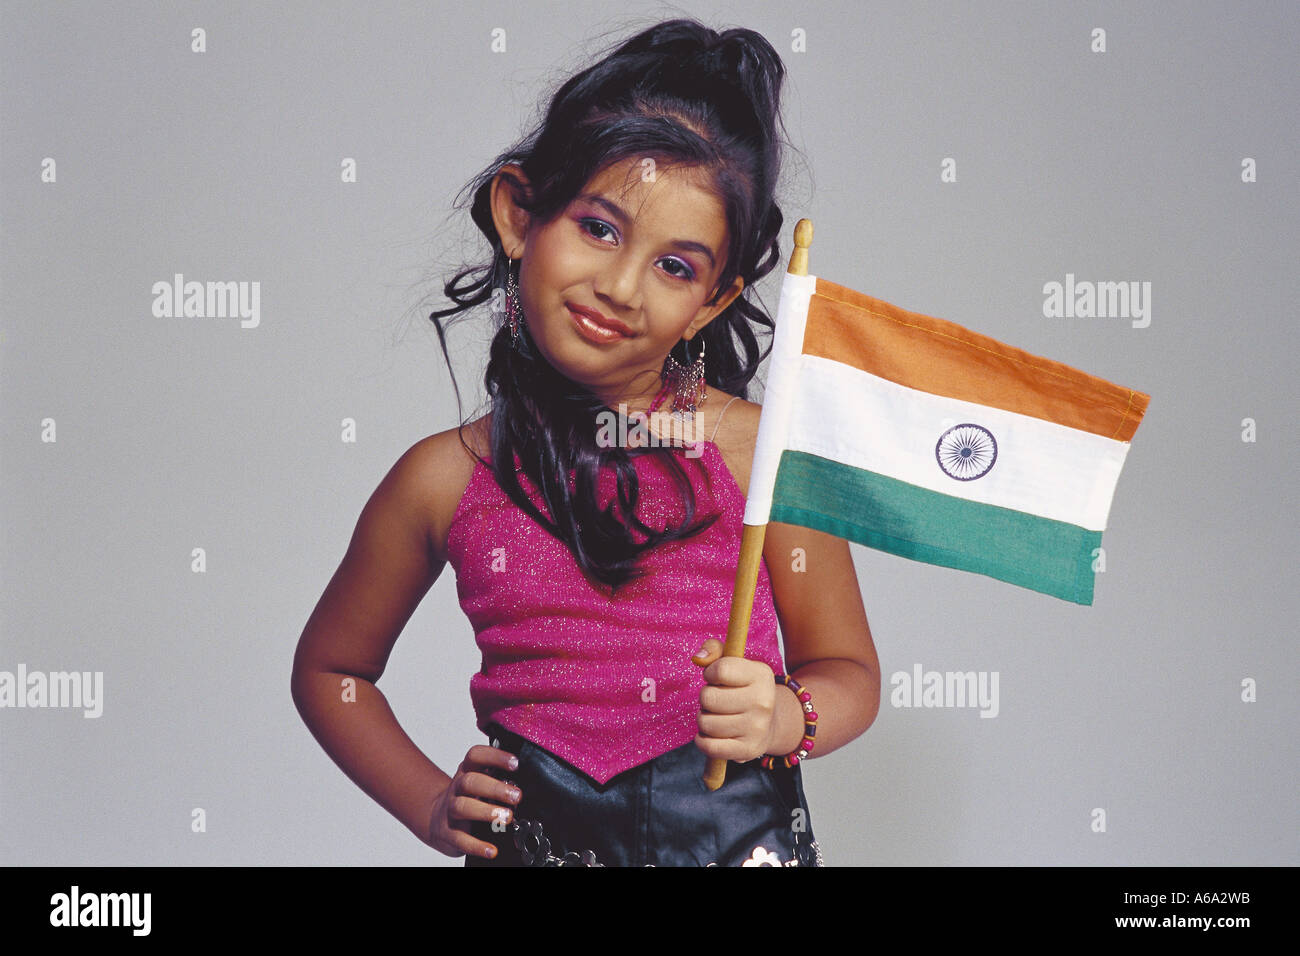 7fe9d1f7ce VDA77144 Model Girl Wearing A fancy Dress model actress Holding The Indian  Flag MR#501